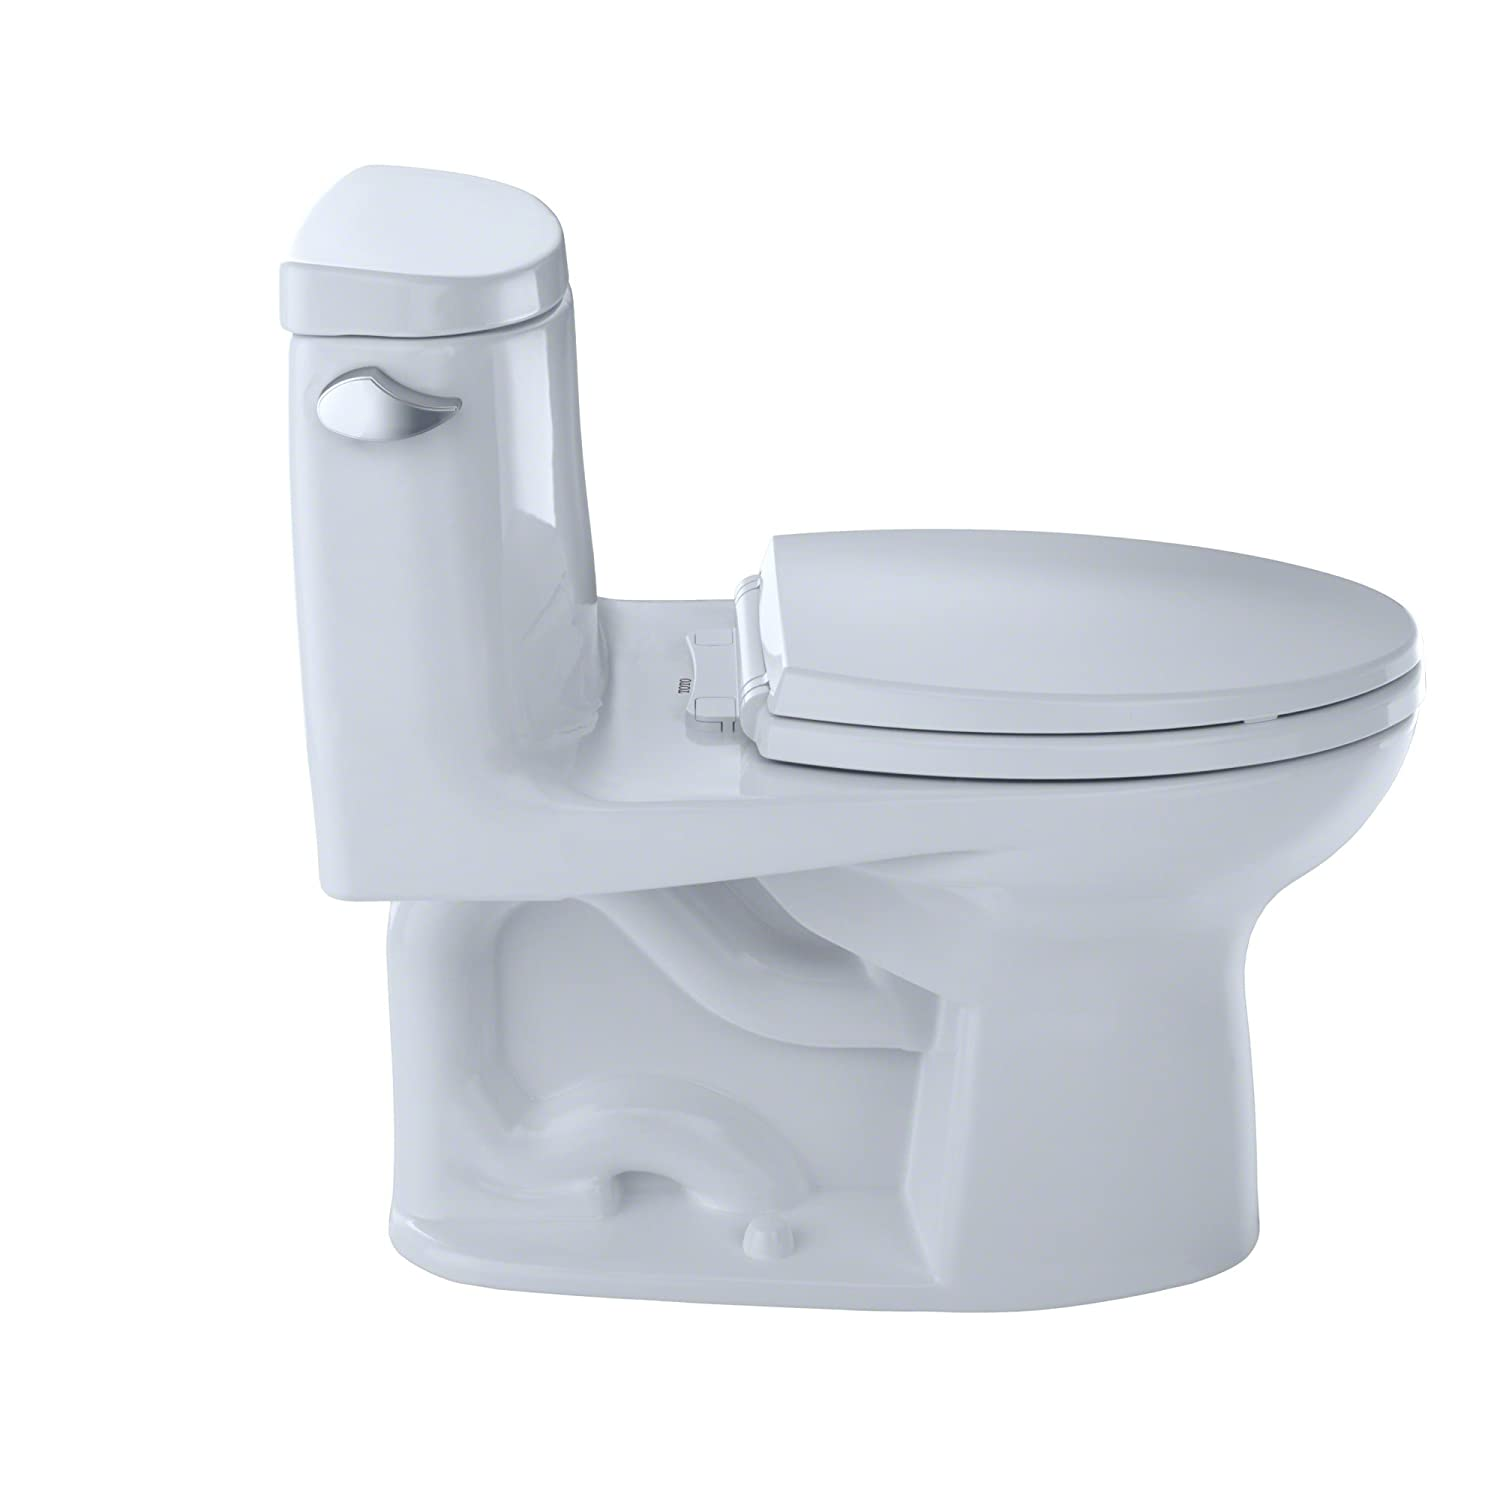 Best Flushing Toilet Reviews【new 2019】 8 Most Powerful